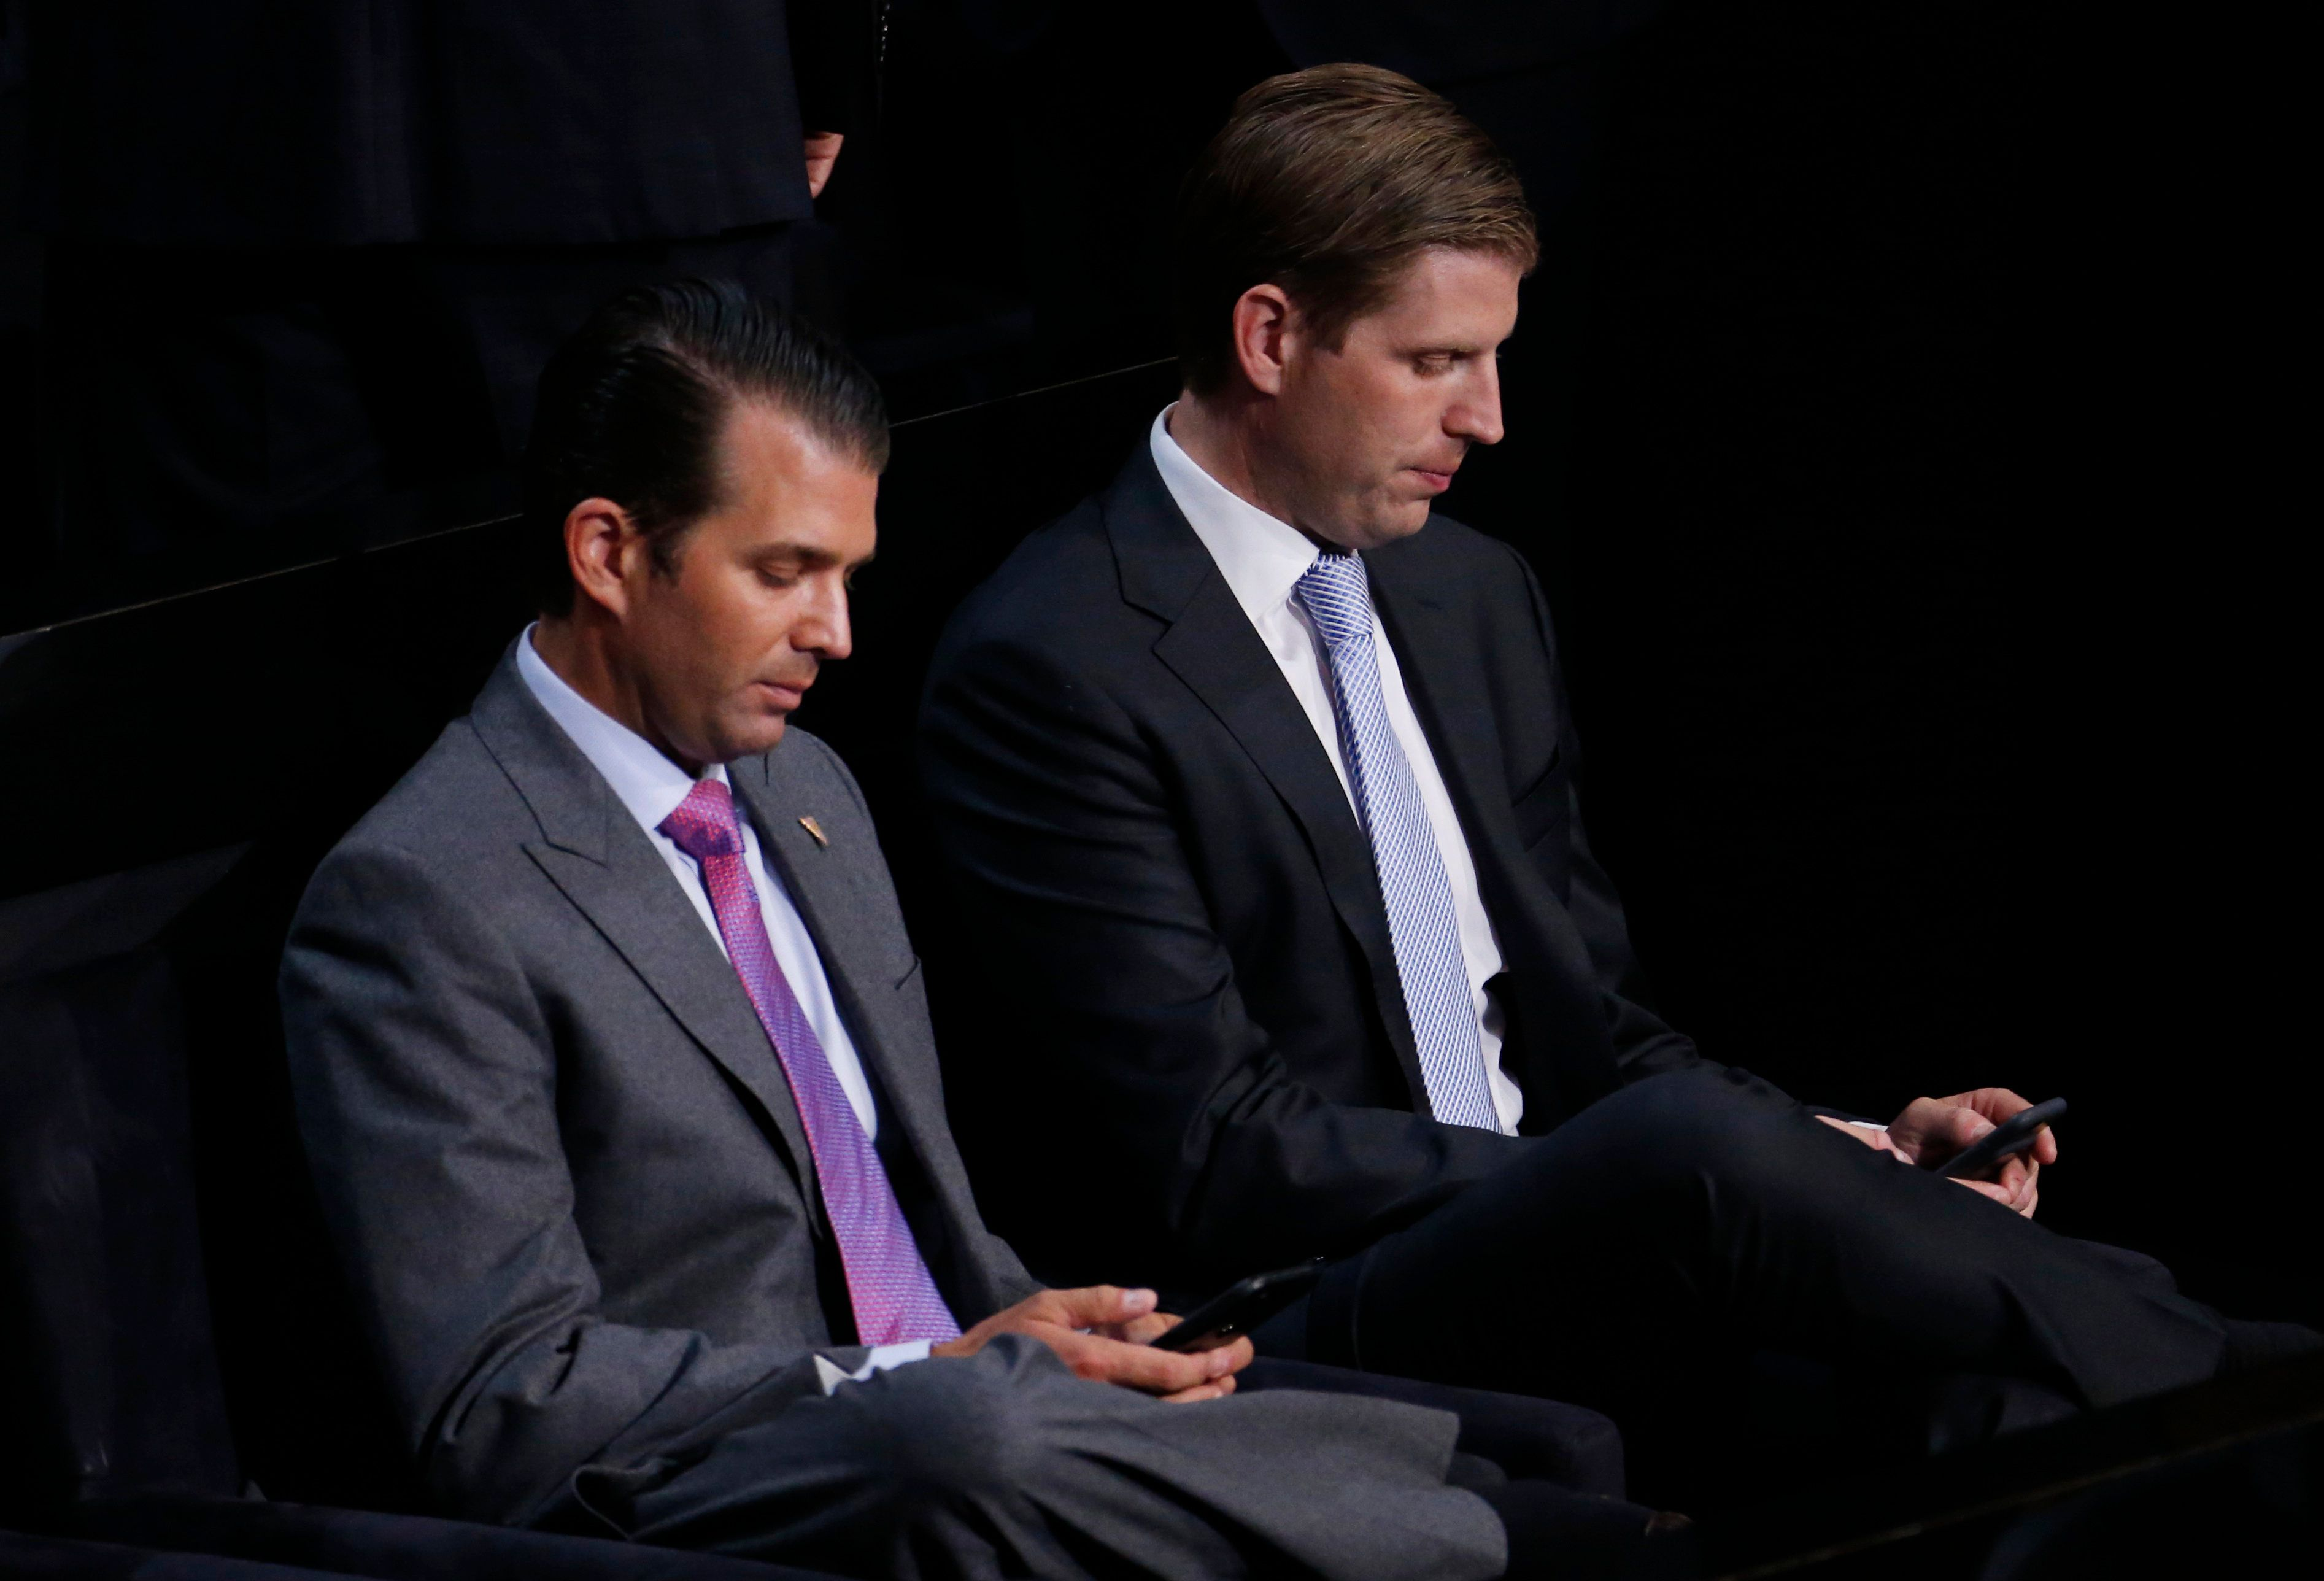 Donald Trump Jr. and his brother Eric at the Republican National Convention in